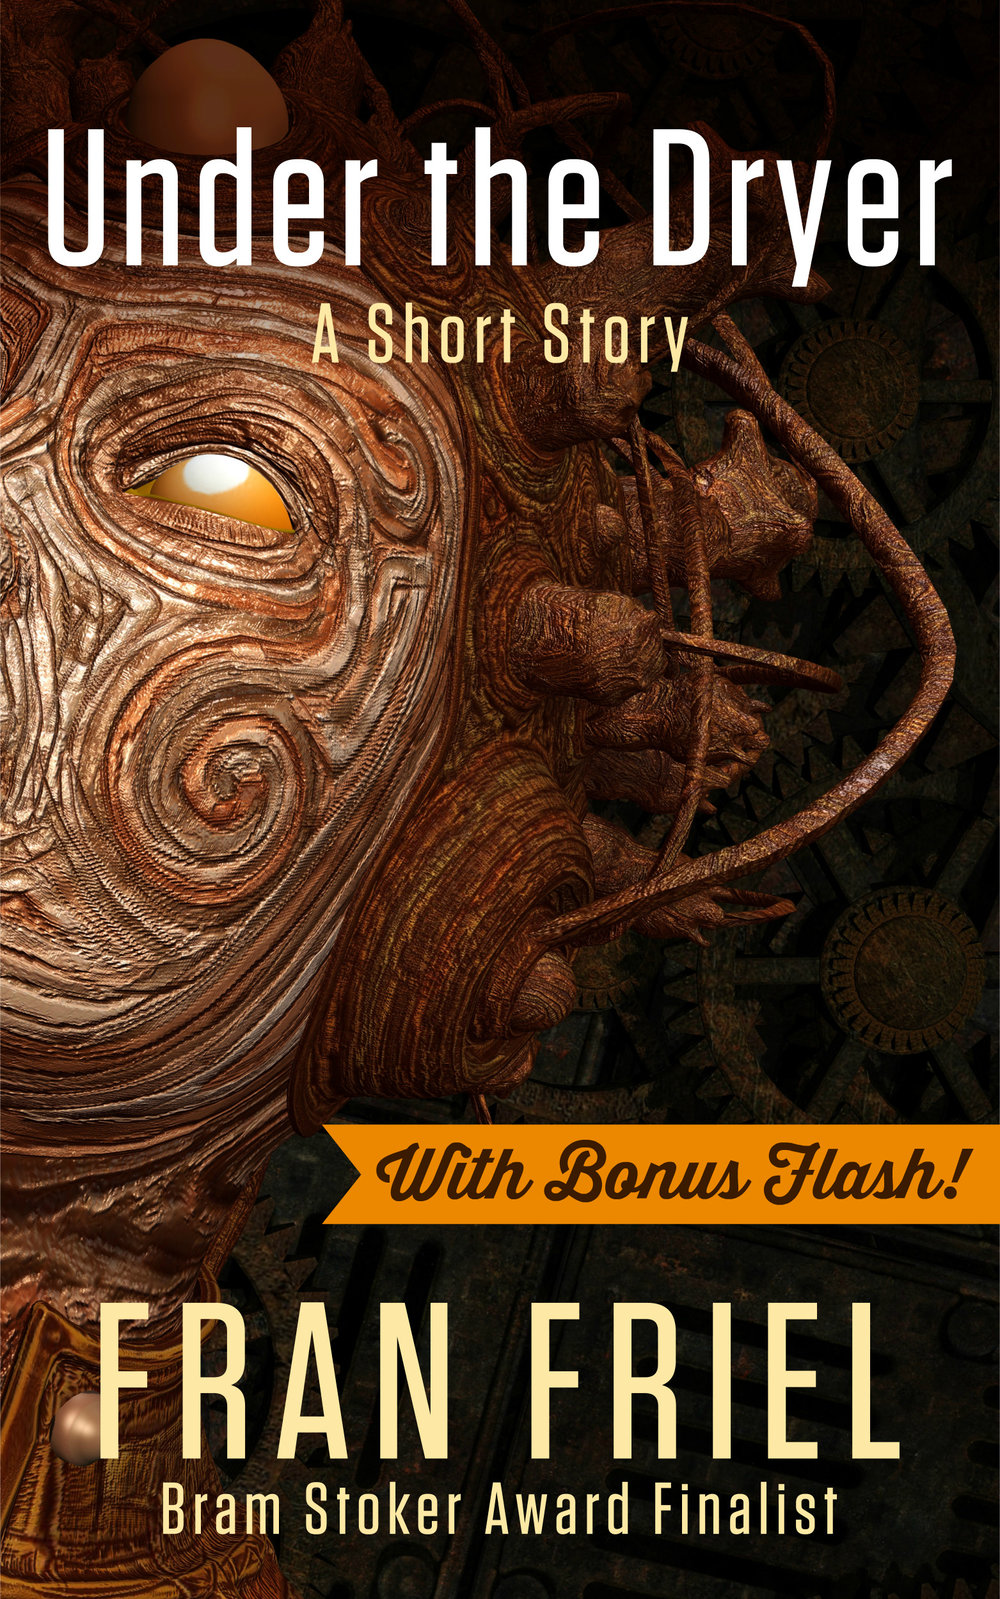 Available Now! - With BONUS FLASH - Orange and Golden!Darkness lurks in the most unexpected places, especially Under the Dryer!From Two-Time Bram Stoker Award Finalist, Fran Friel:A dark story of bravery, loyalty, hubris, and love told through the eyes of Goliath.Is the Old Lore of the Great Mastiffs true? Will Goliath's efforts be enough to protect his oblivious humans and his best friend, Teddy, from the Ancient Evil?Grab your copy of this poignant, yet darkly humorous story that will make you think twice about looking Under the Dryer!